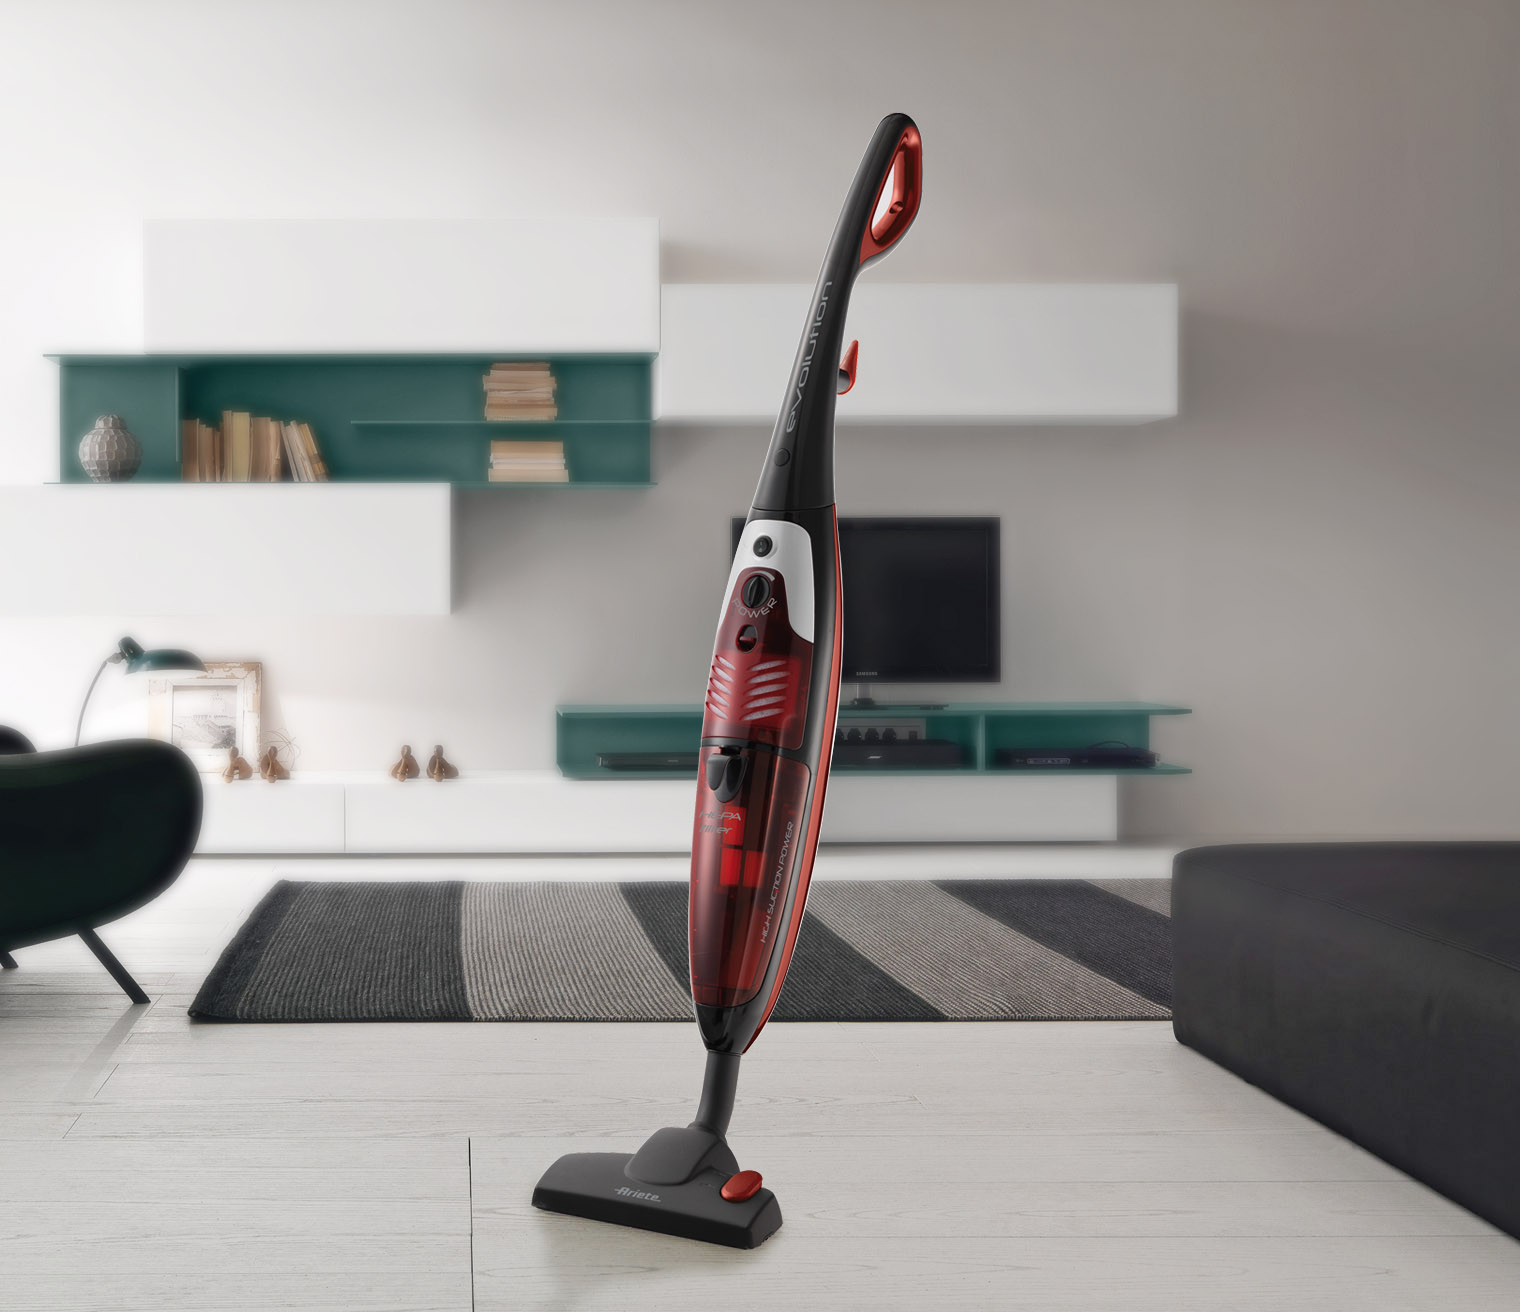 Le migliori scope elettriche classifica e recensioni di for Ariete evo 2 in 1 cordless